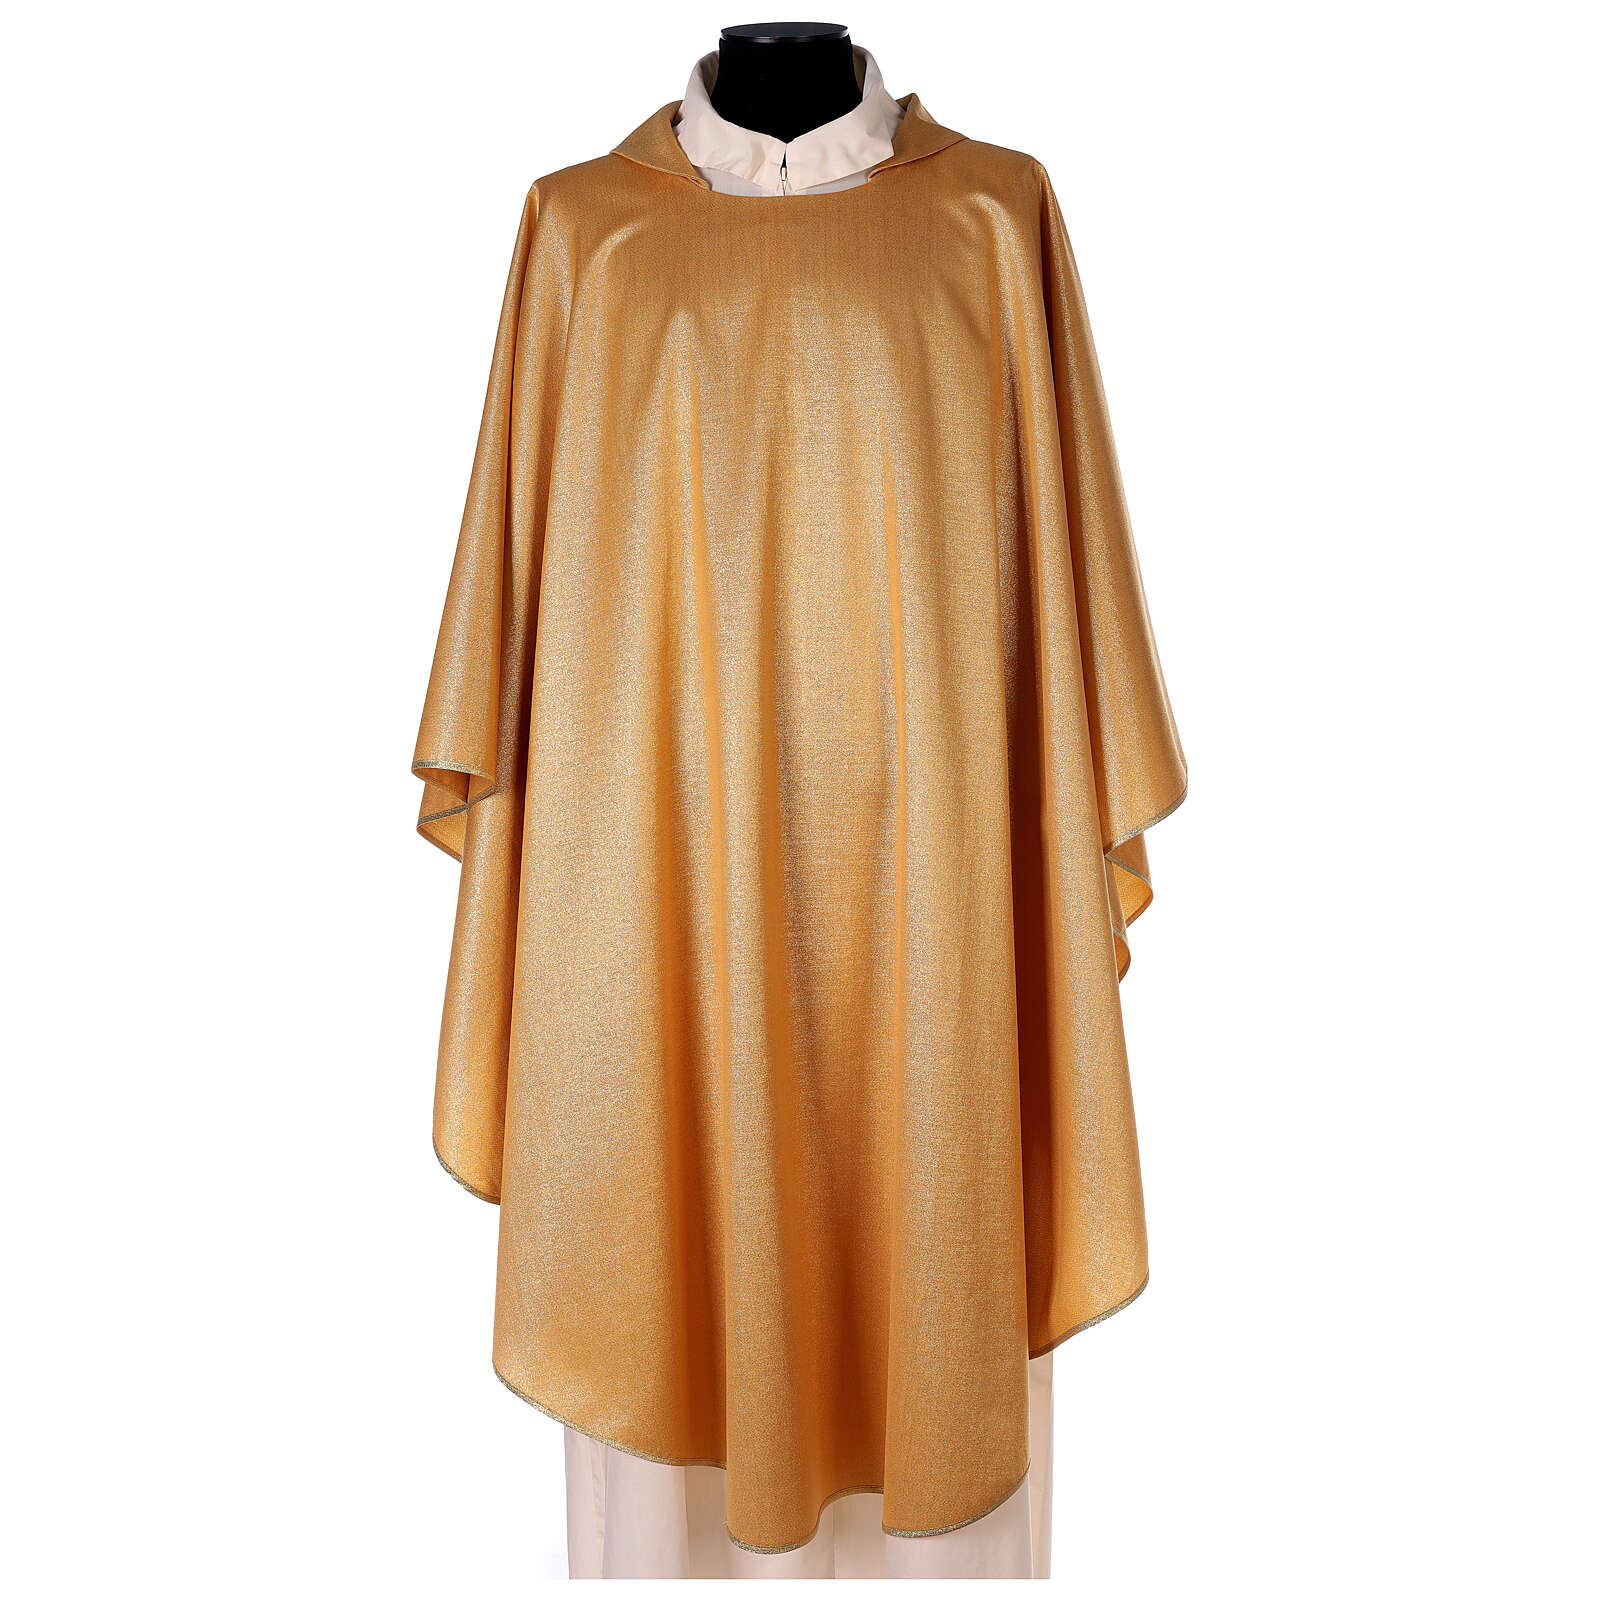 Plain gold chasuble, 100% polyester without embroidery 4